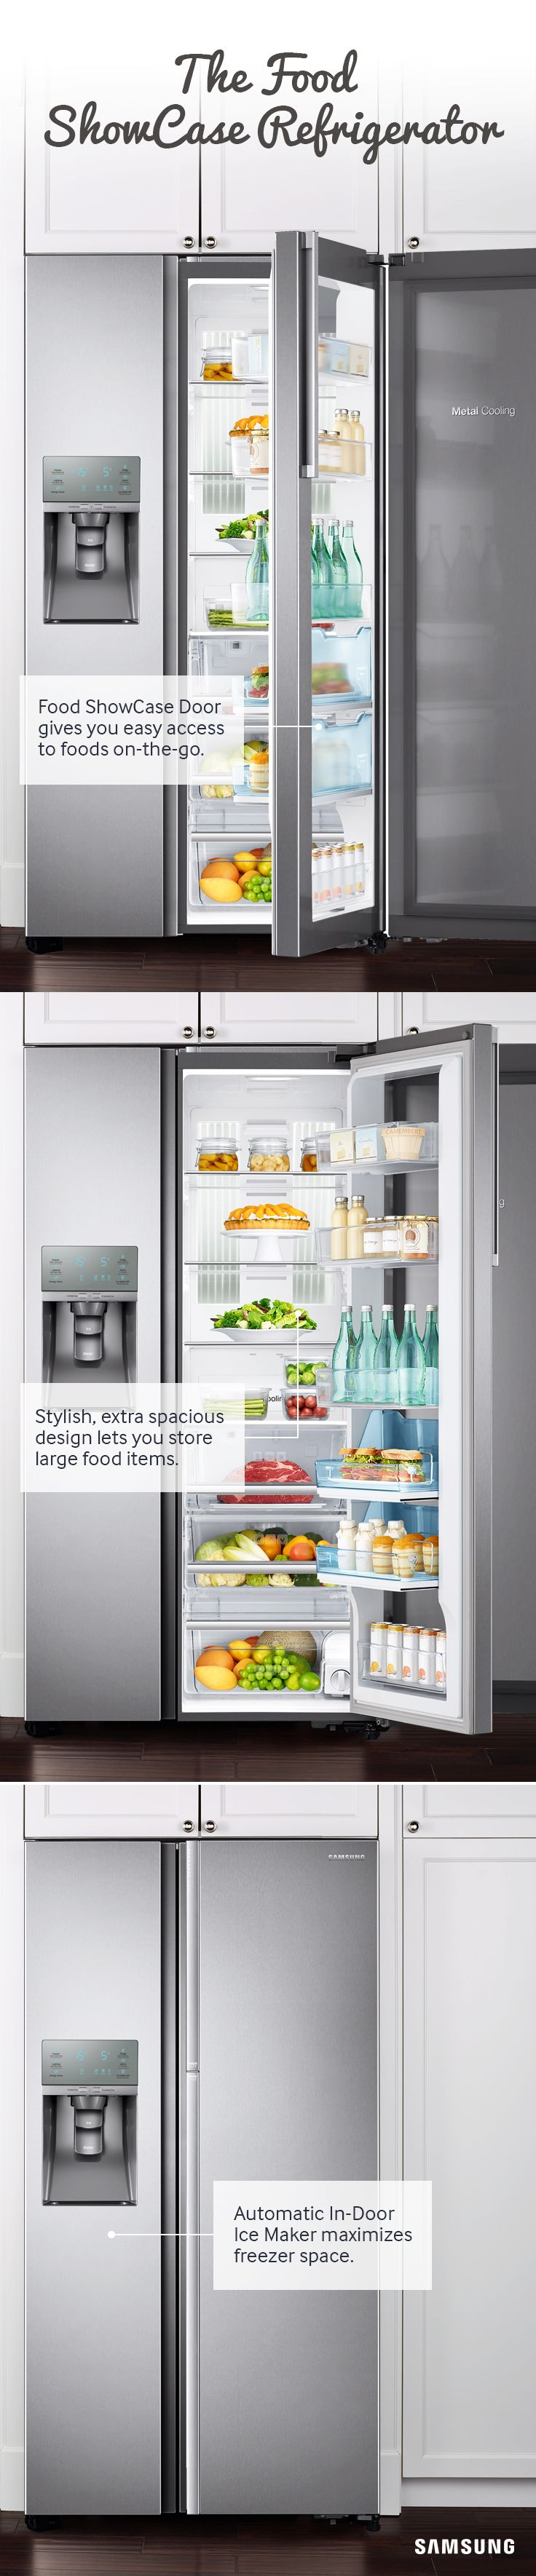 Learn how the capacity and organizational ease of Samsung's Food ShowCase Refrigerator can help you make the most of your holiday season.